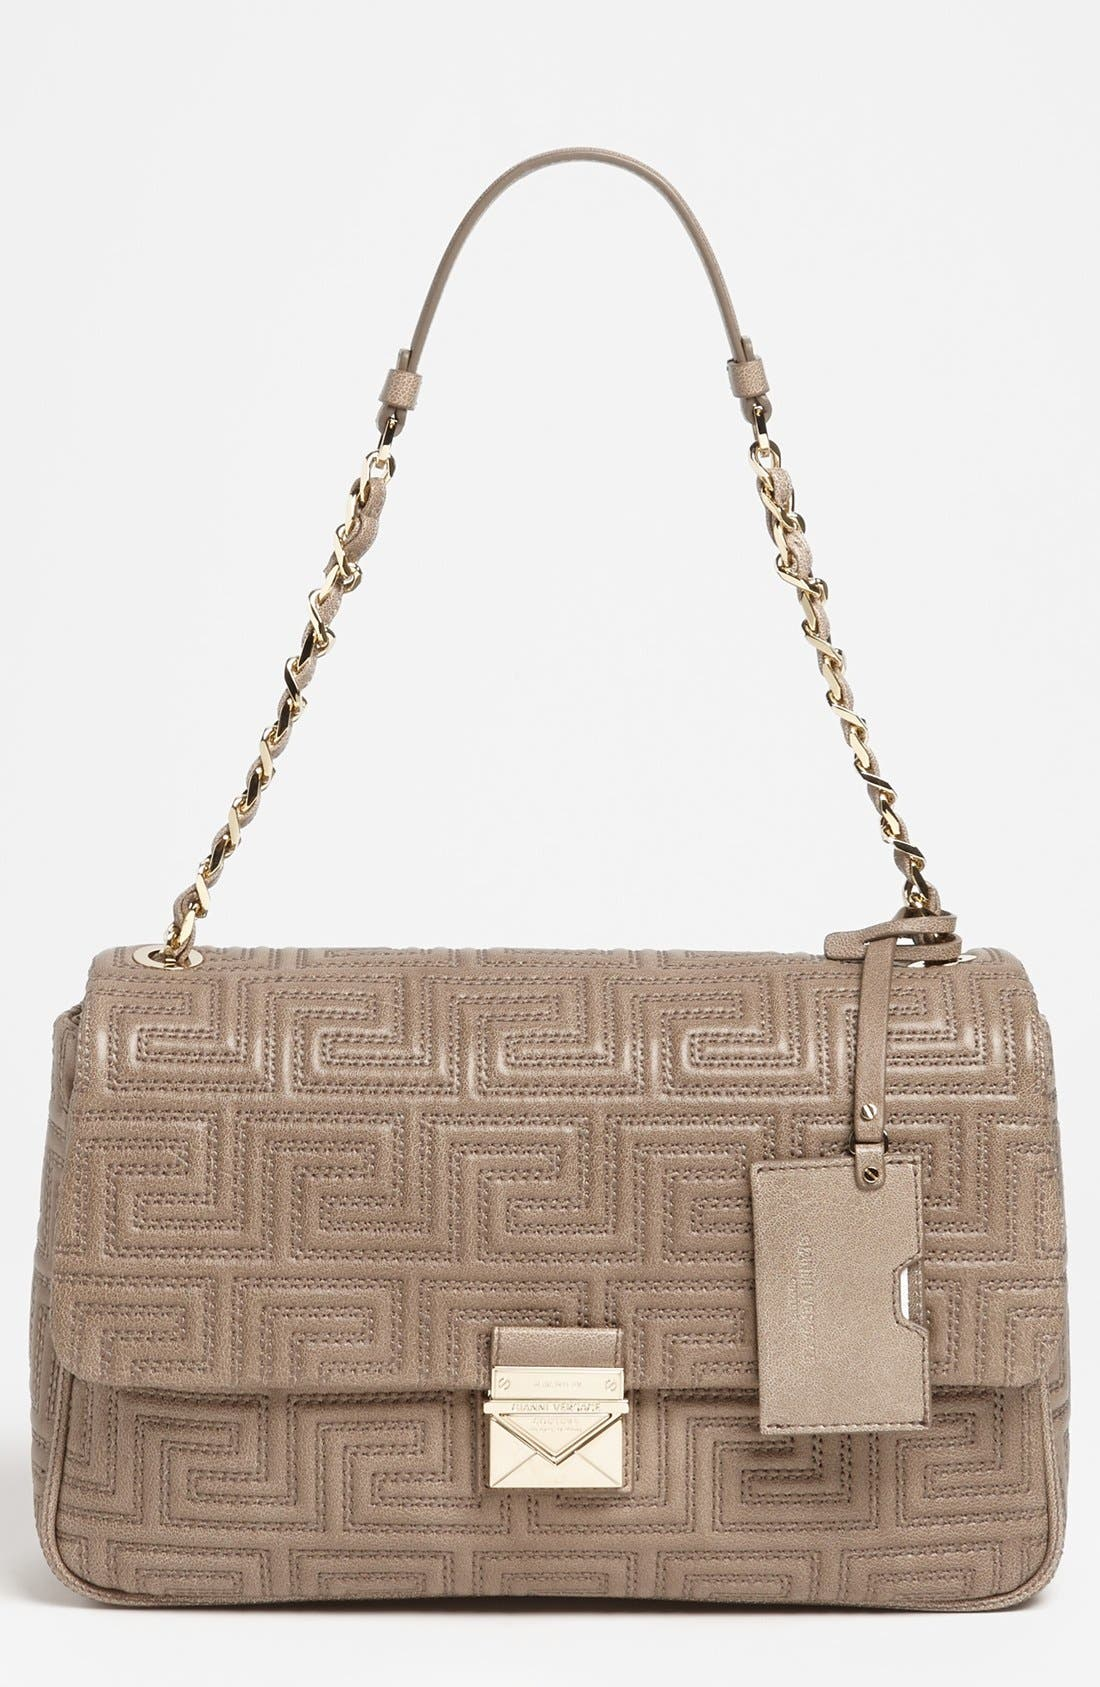 Alternate Image 1 Selected - Versace 'Couture' Leather Flap Shoulder Bag